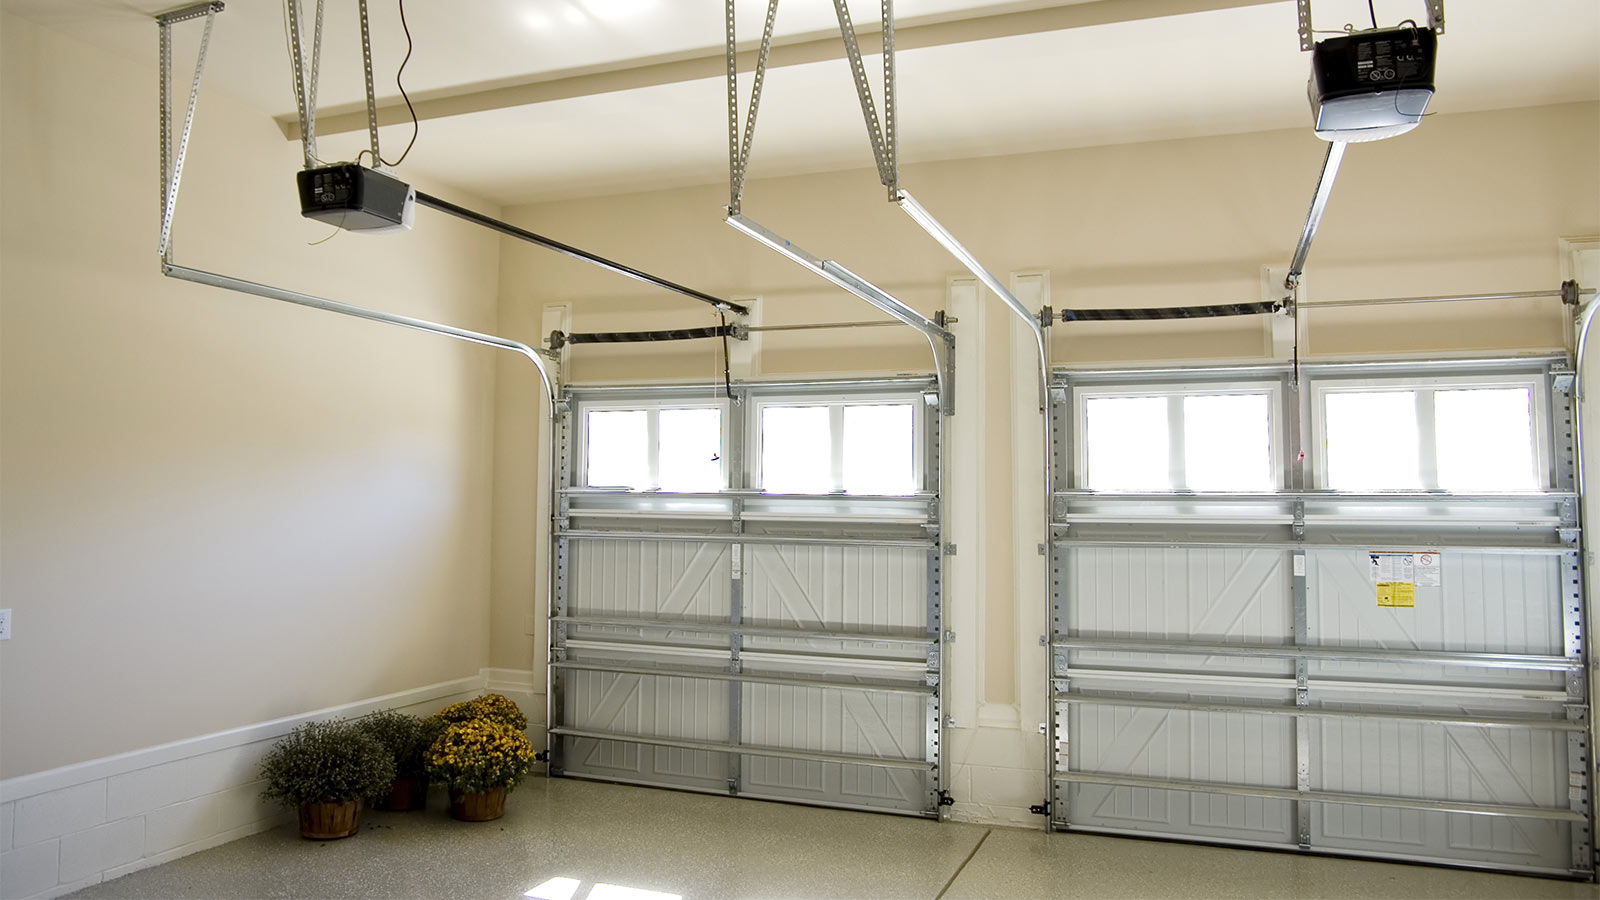 Sectional Garage Doors from Electric Gates Romford suppliers.